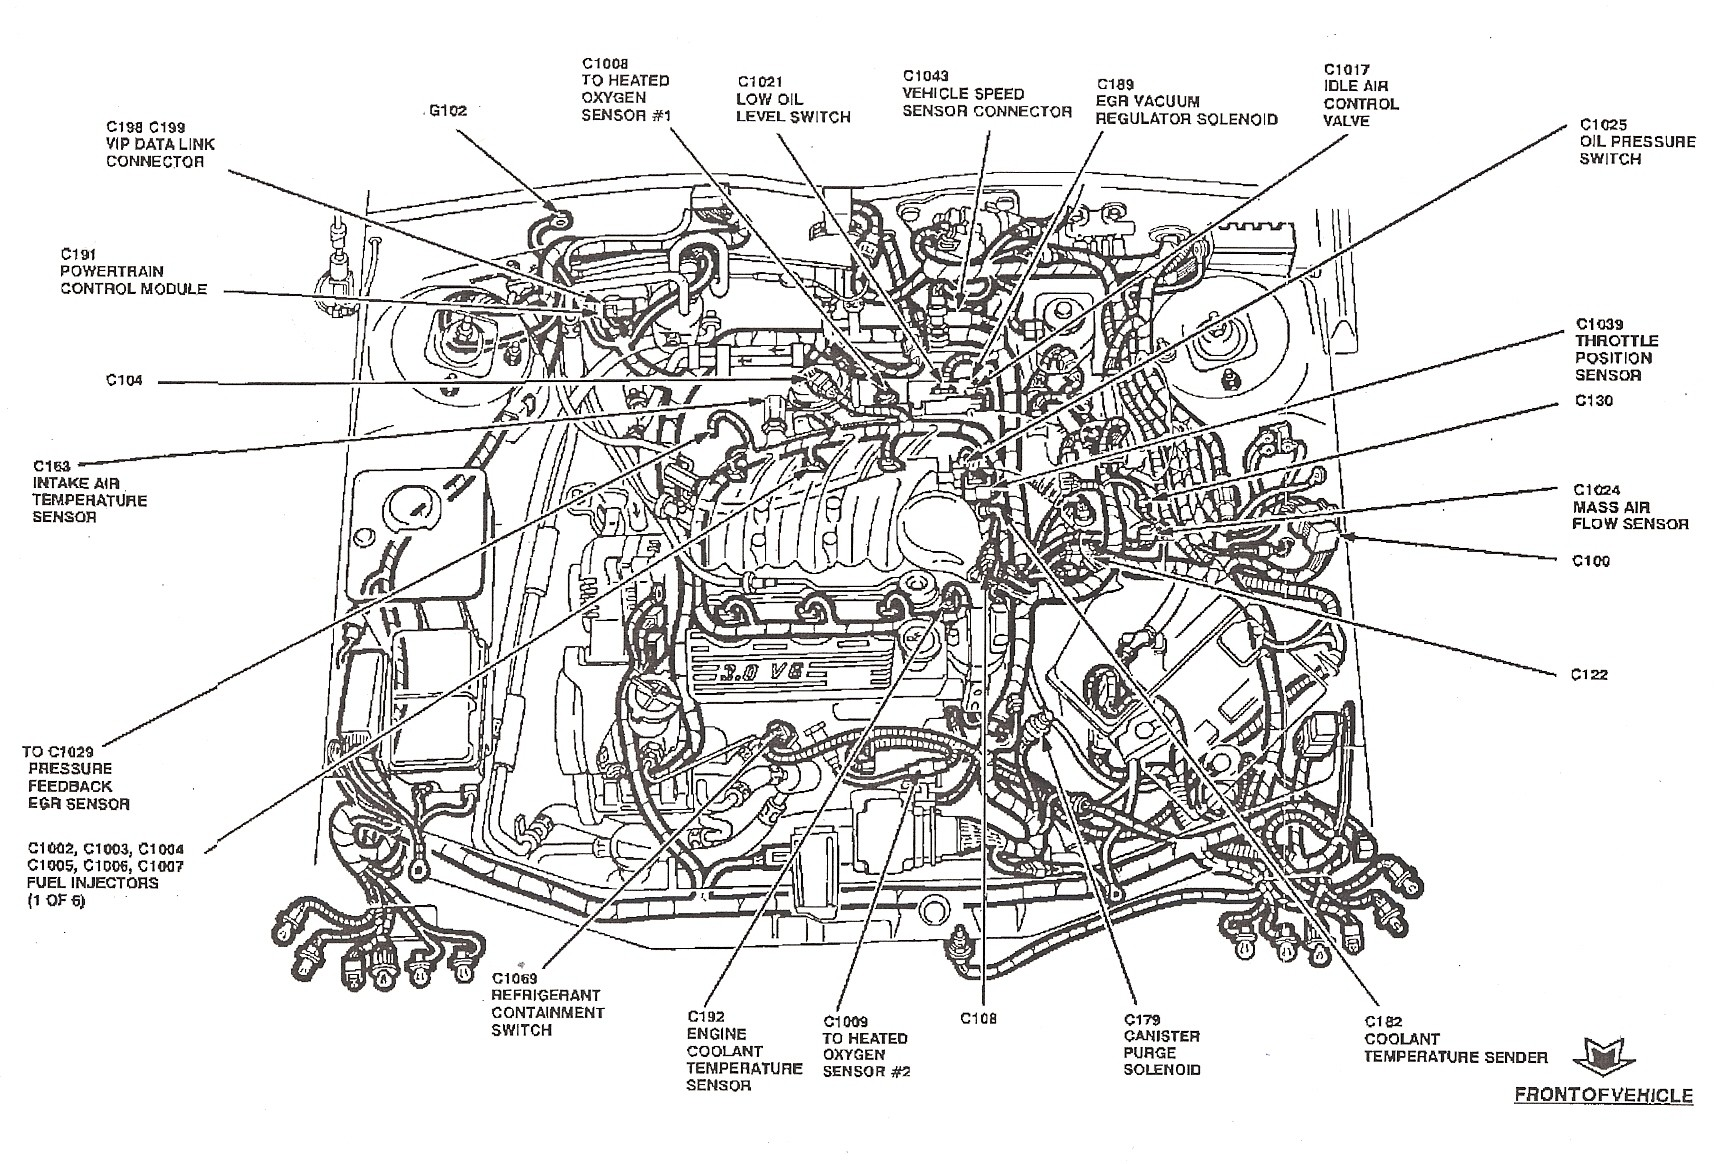 hight resolution of 2006 taurus vacuum diagram wiring diagram used 1998fordtaurustransmissiondiagram 1997 ford taurus sho wiring 2006 taurus vacuum